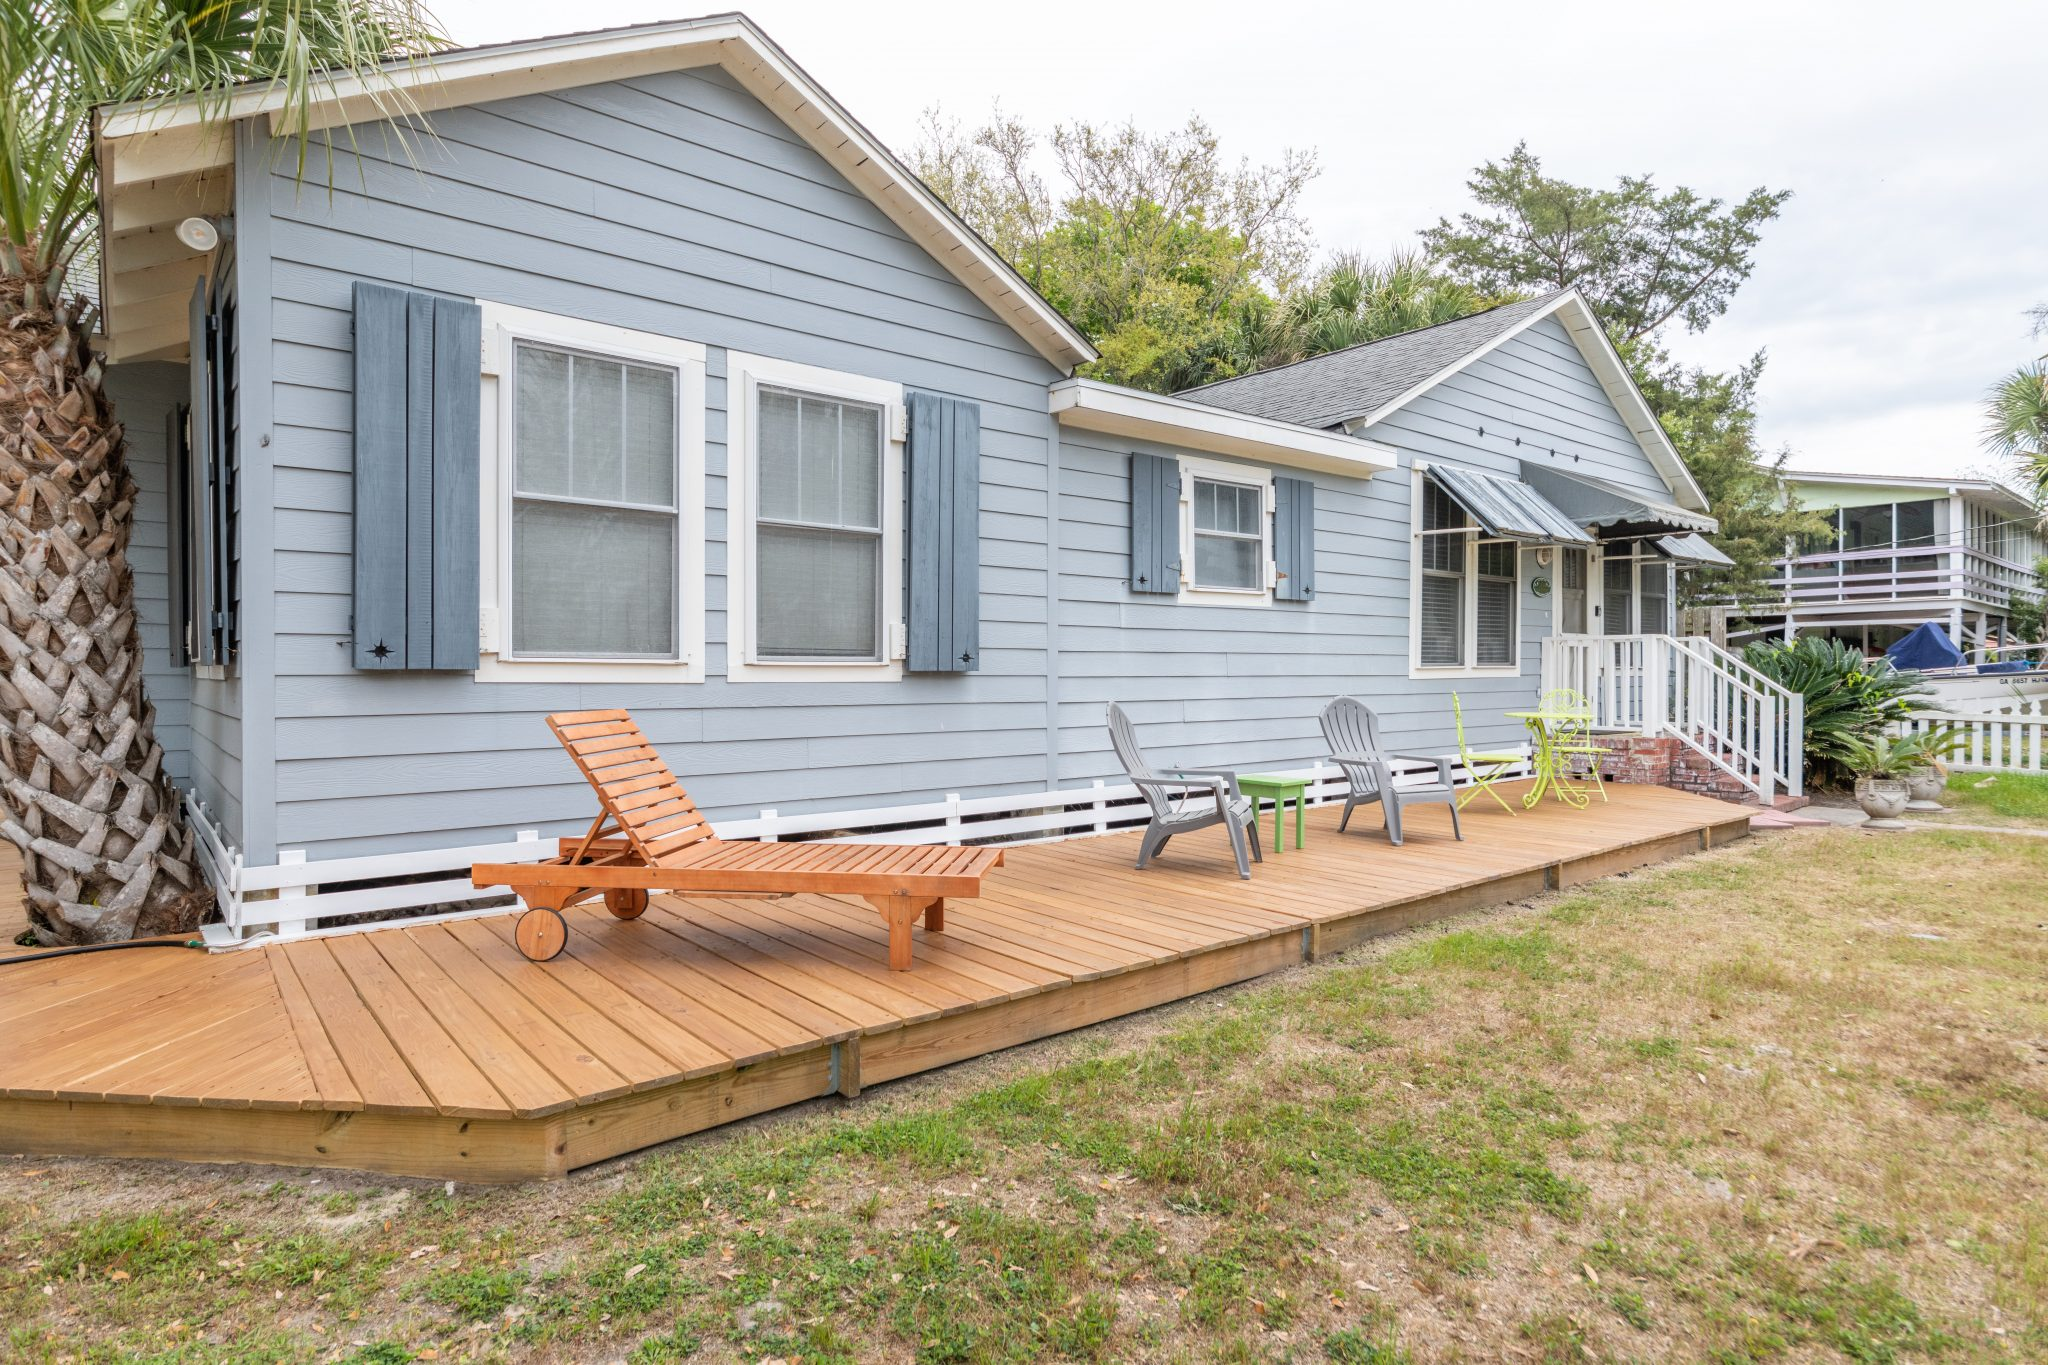 remote work and play at blue heron cottage